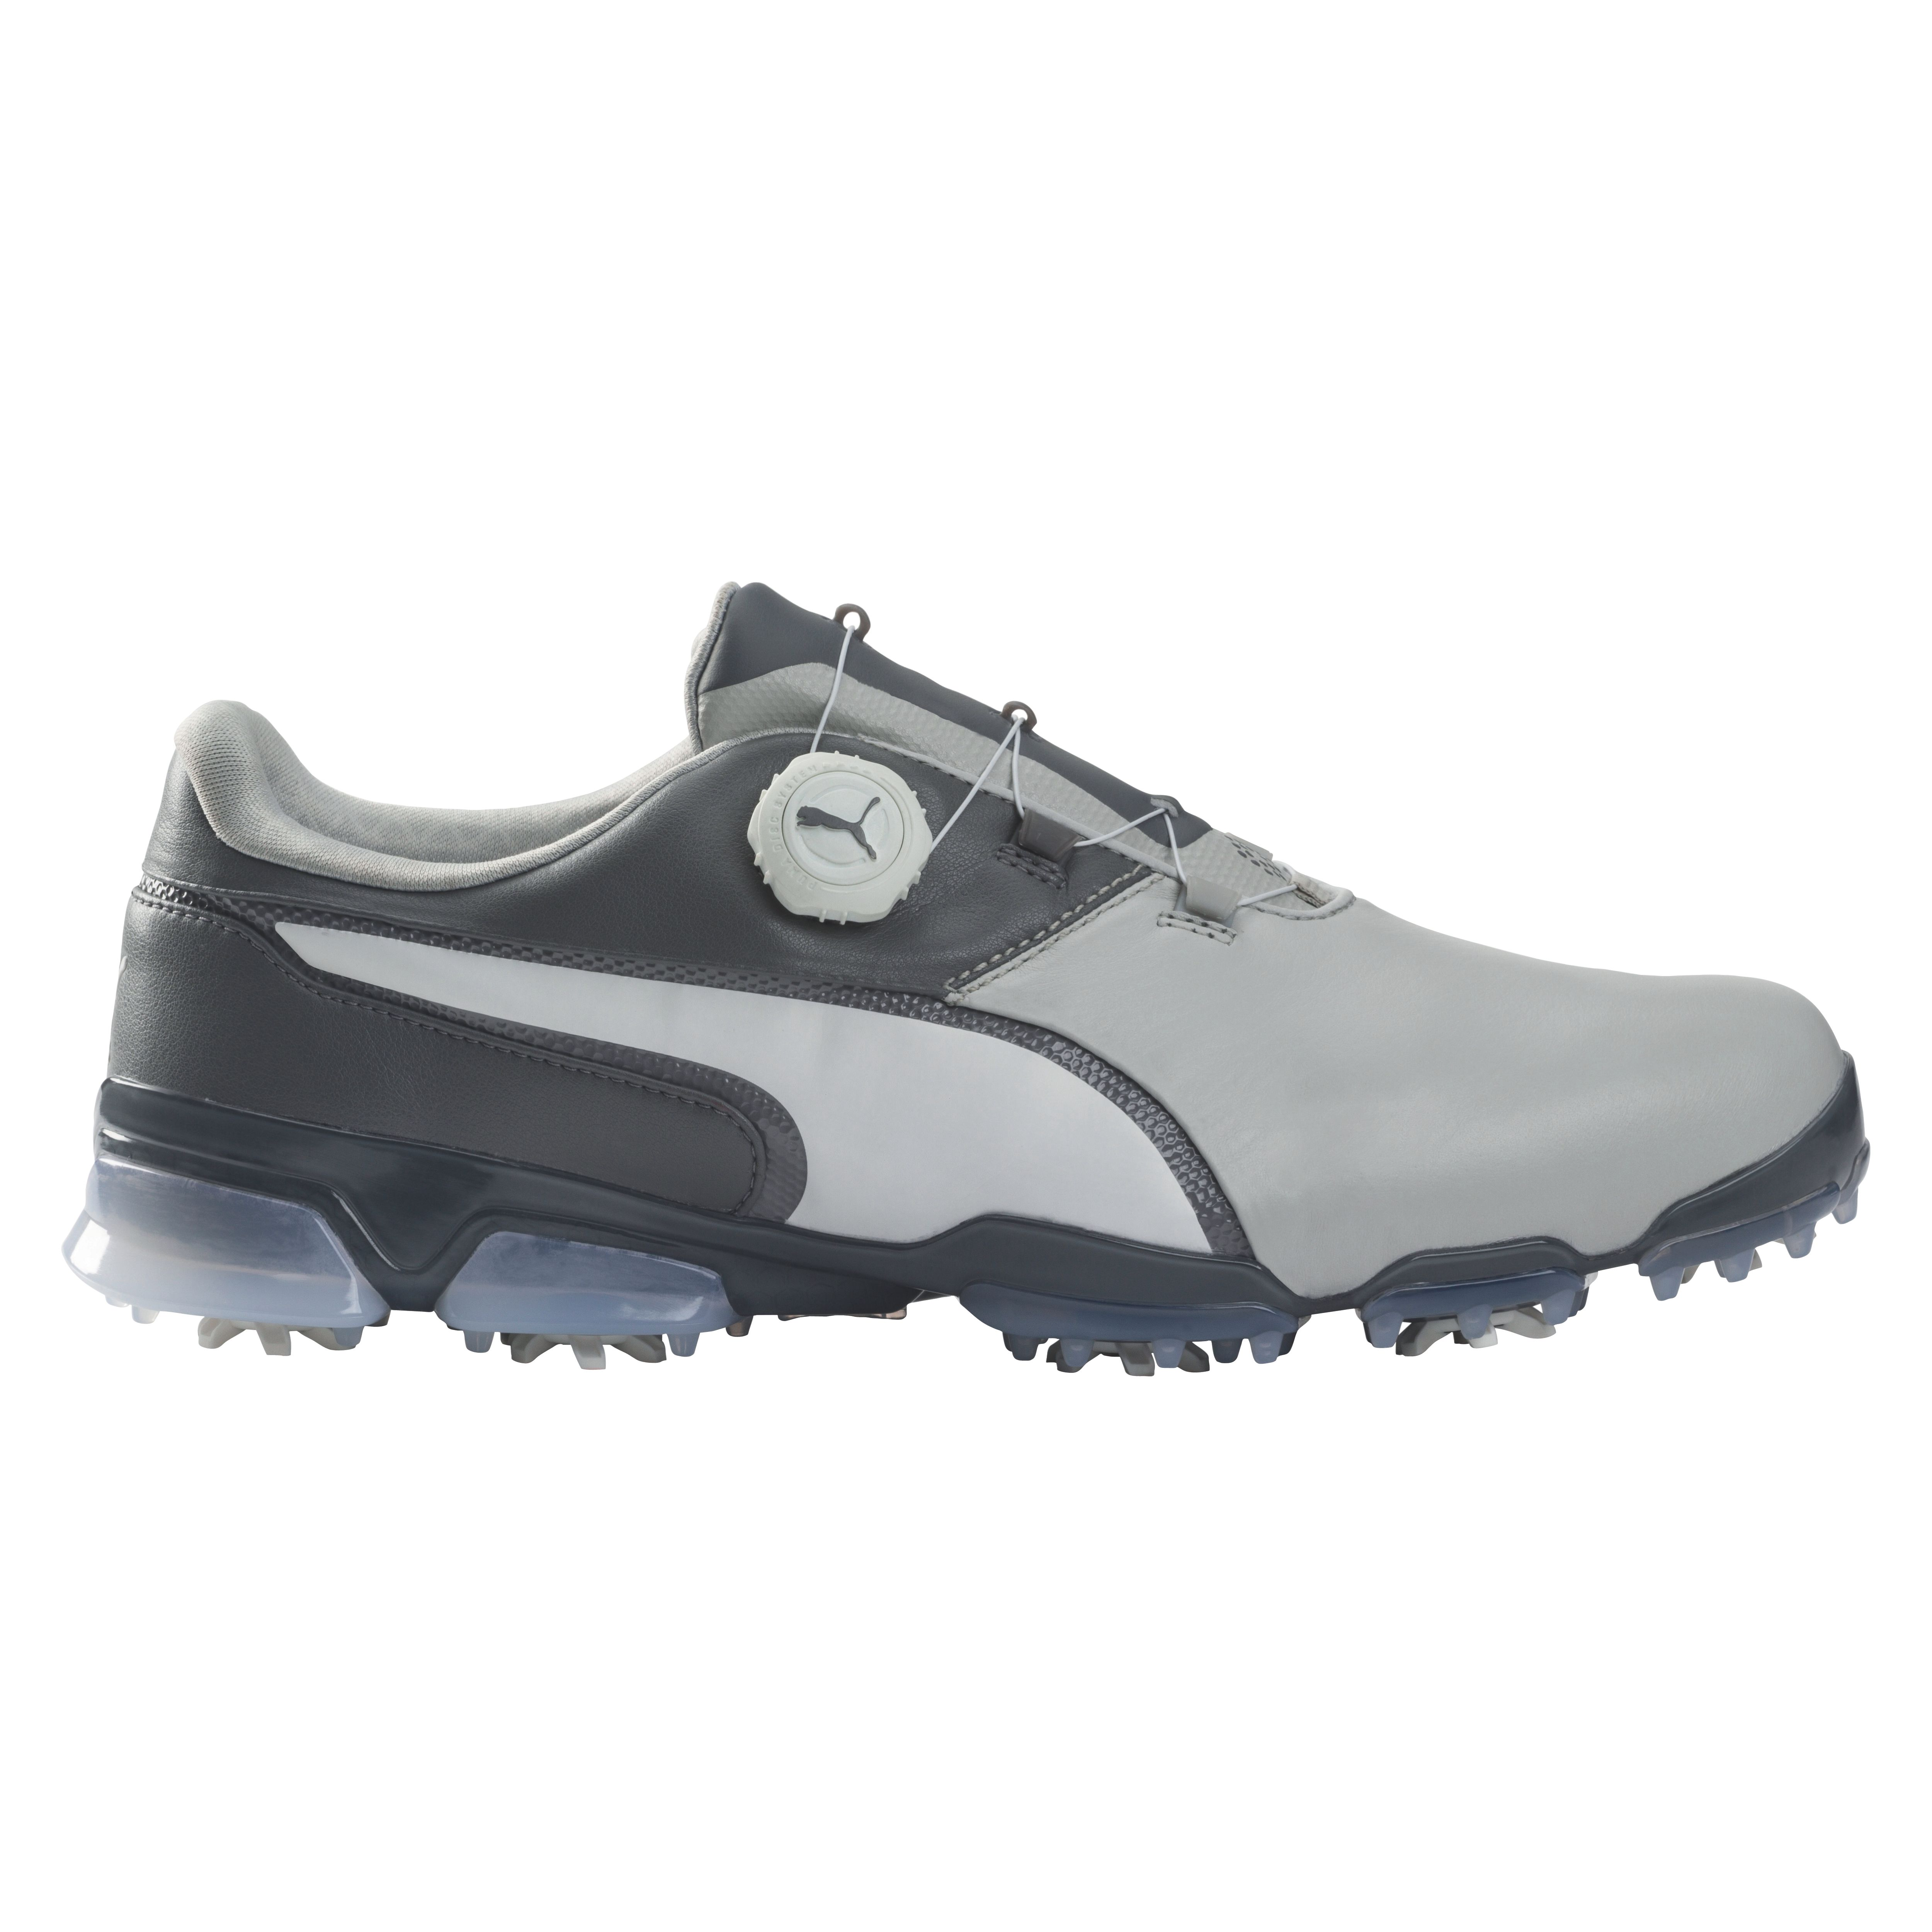 PUMA Ignite DISC Collection of Golf Shoes Preview - The Hackers ... aea91754f